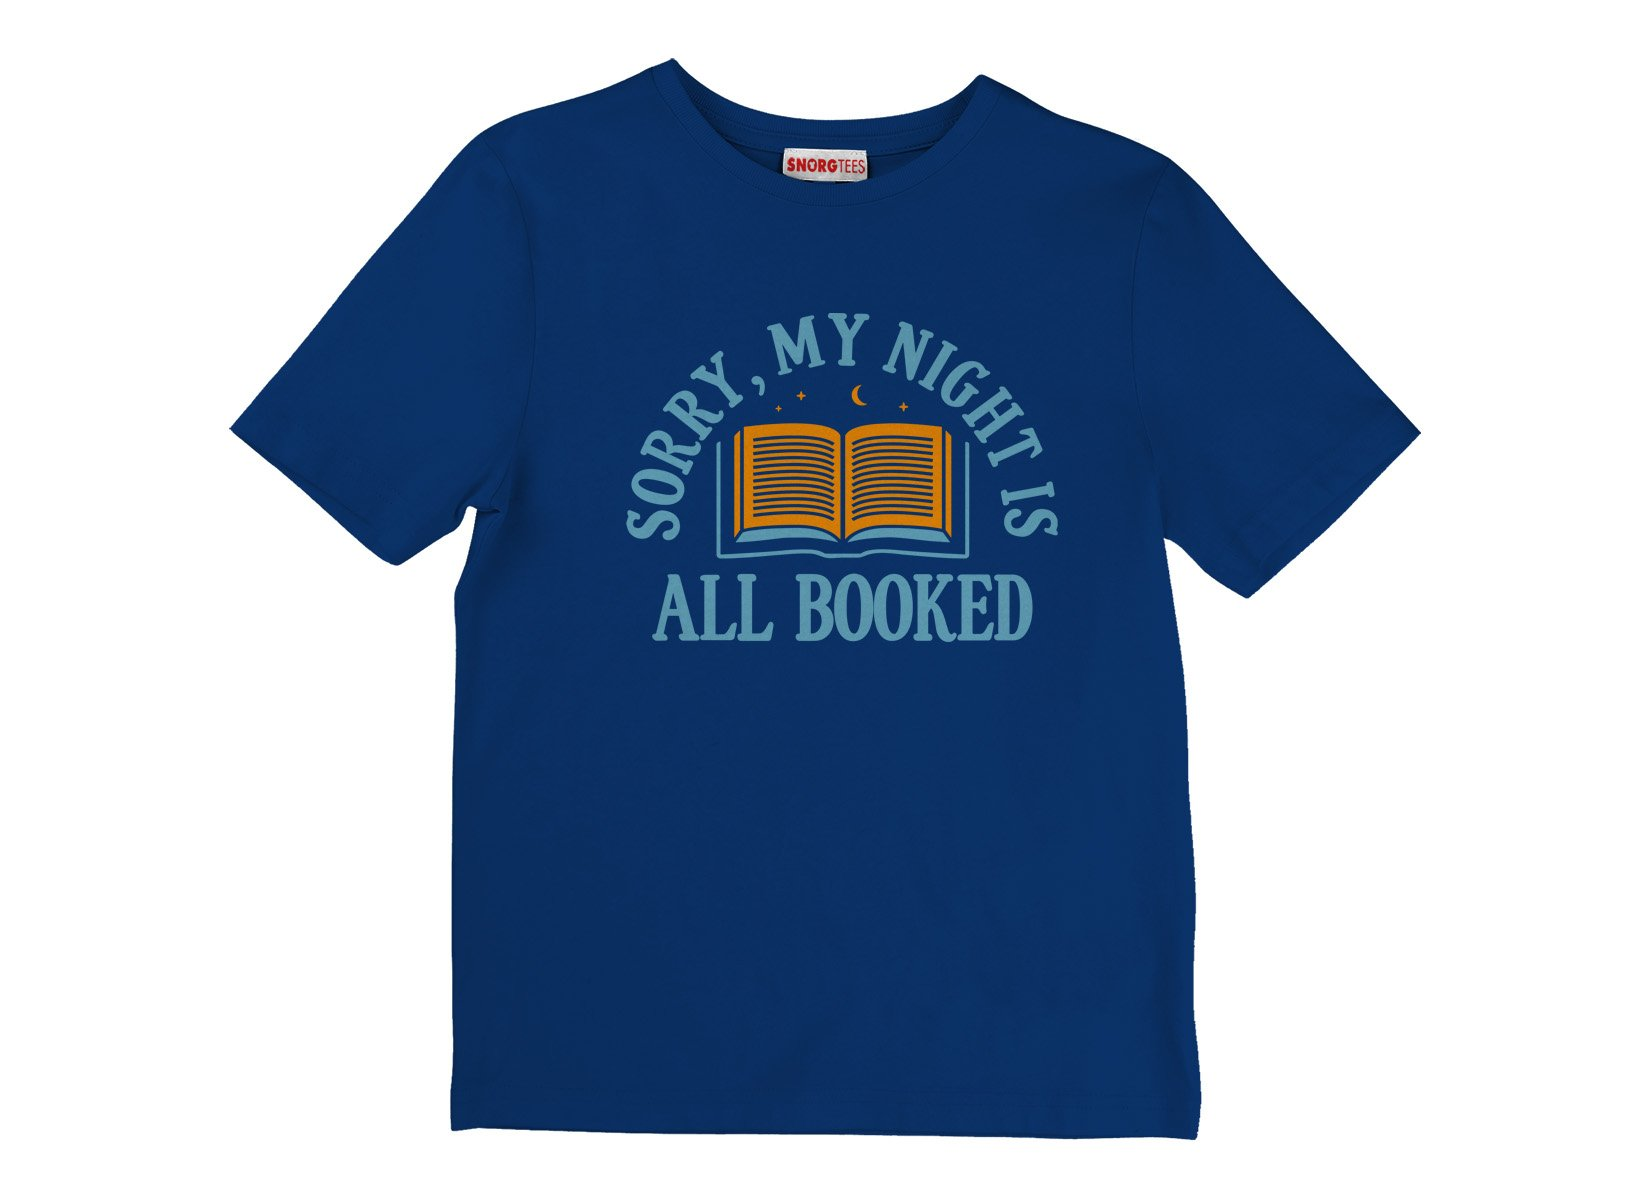 Sorry, My Night Is All Booked on Kids T-Shirt